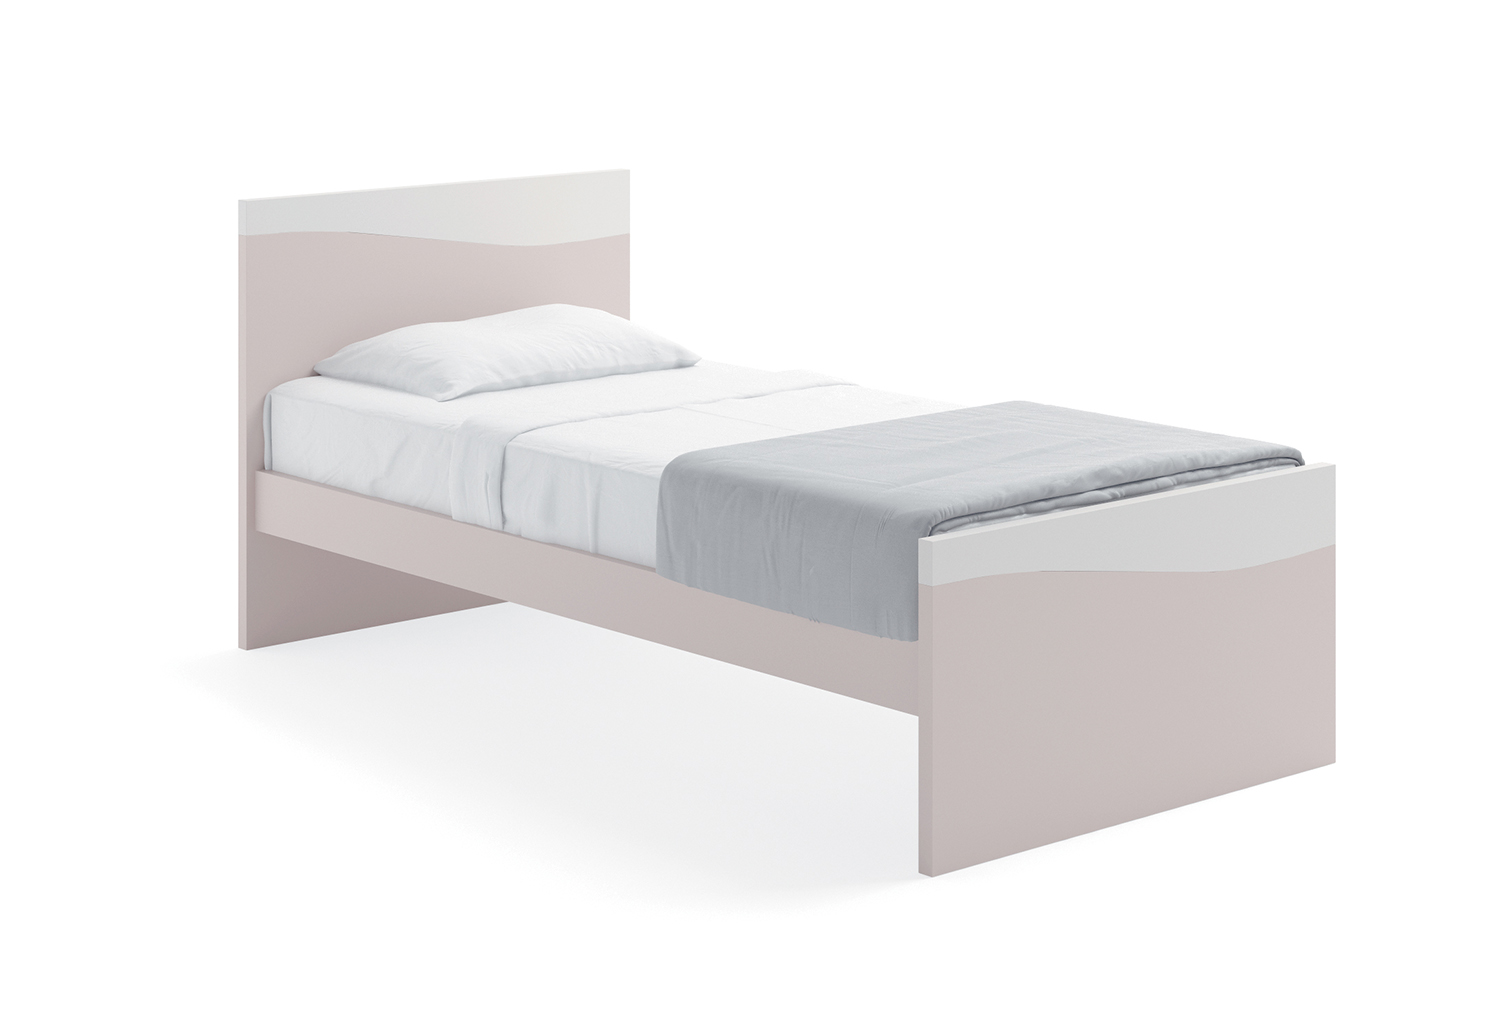 Core simple single bed frame with a customizable streamlined design